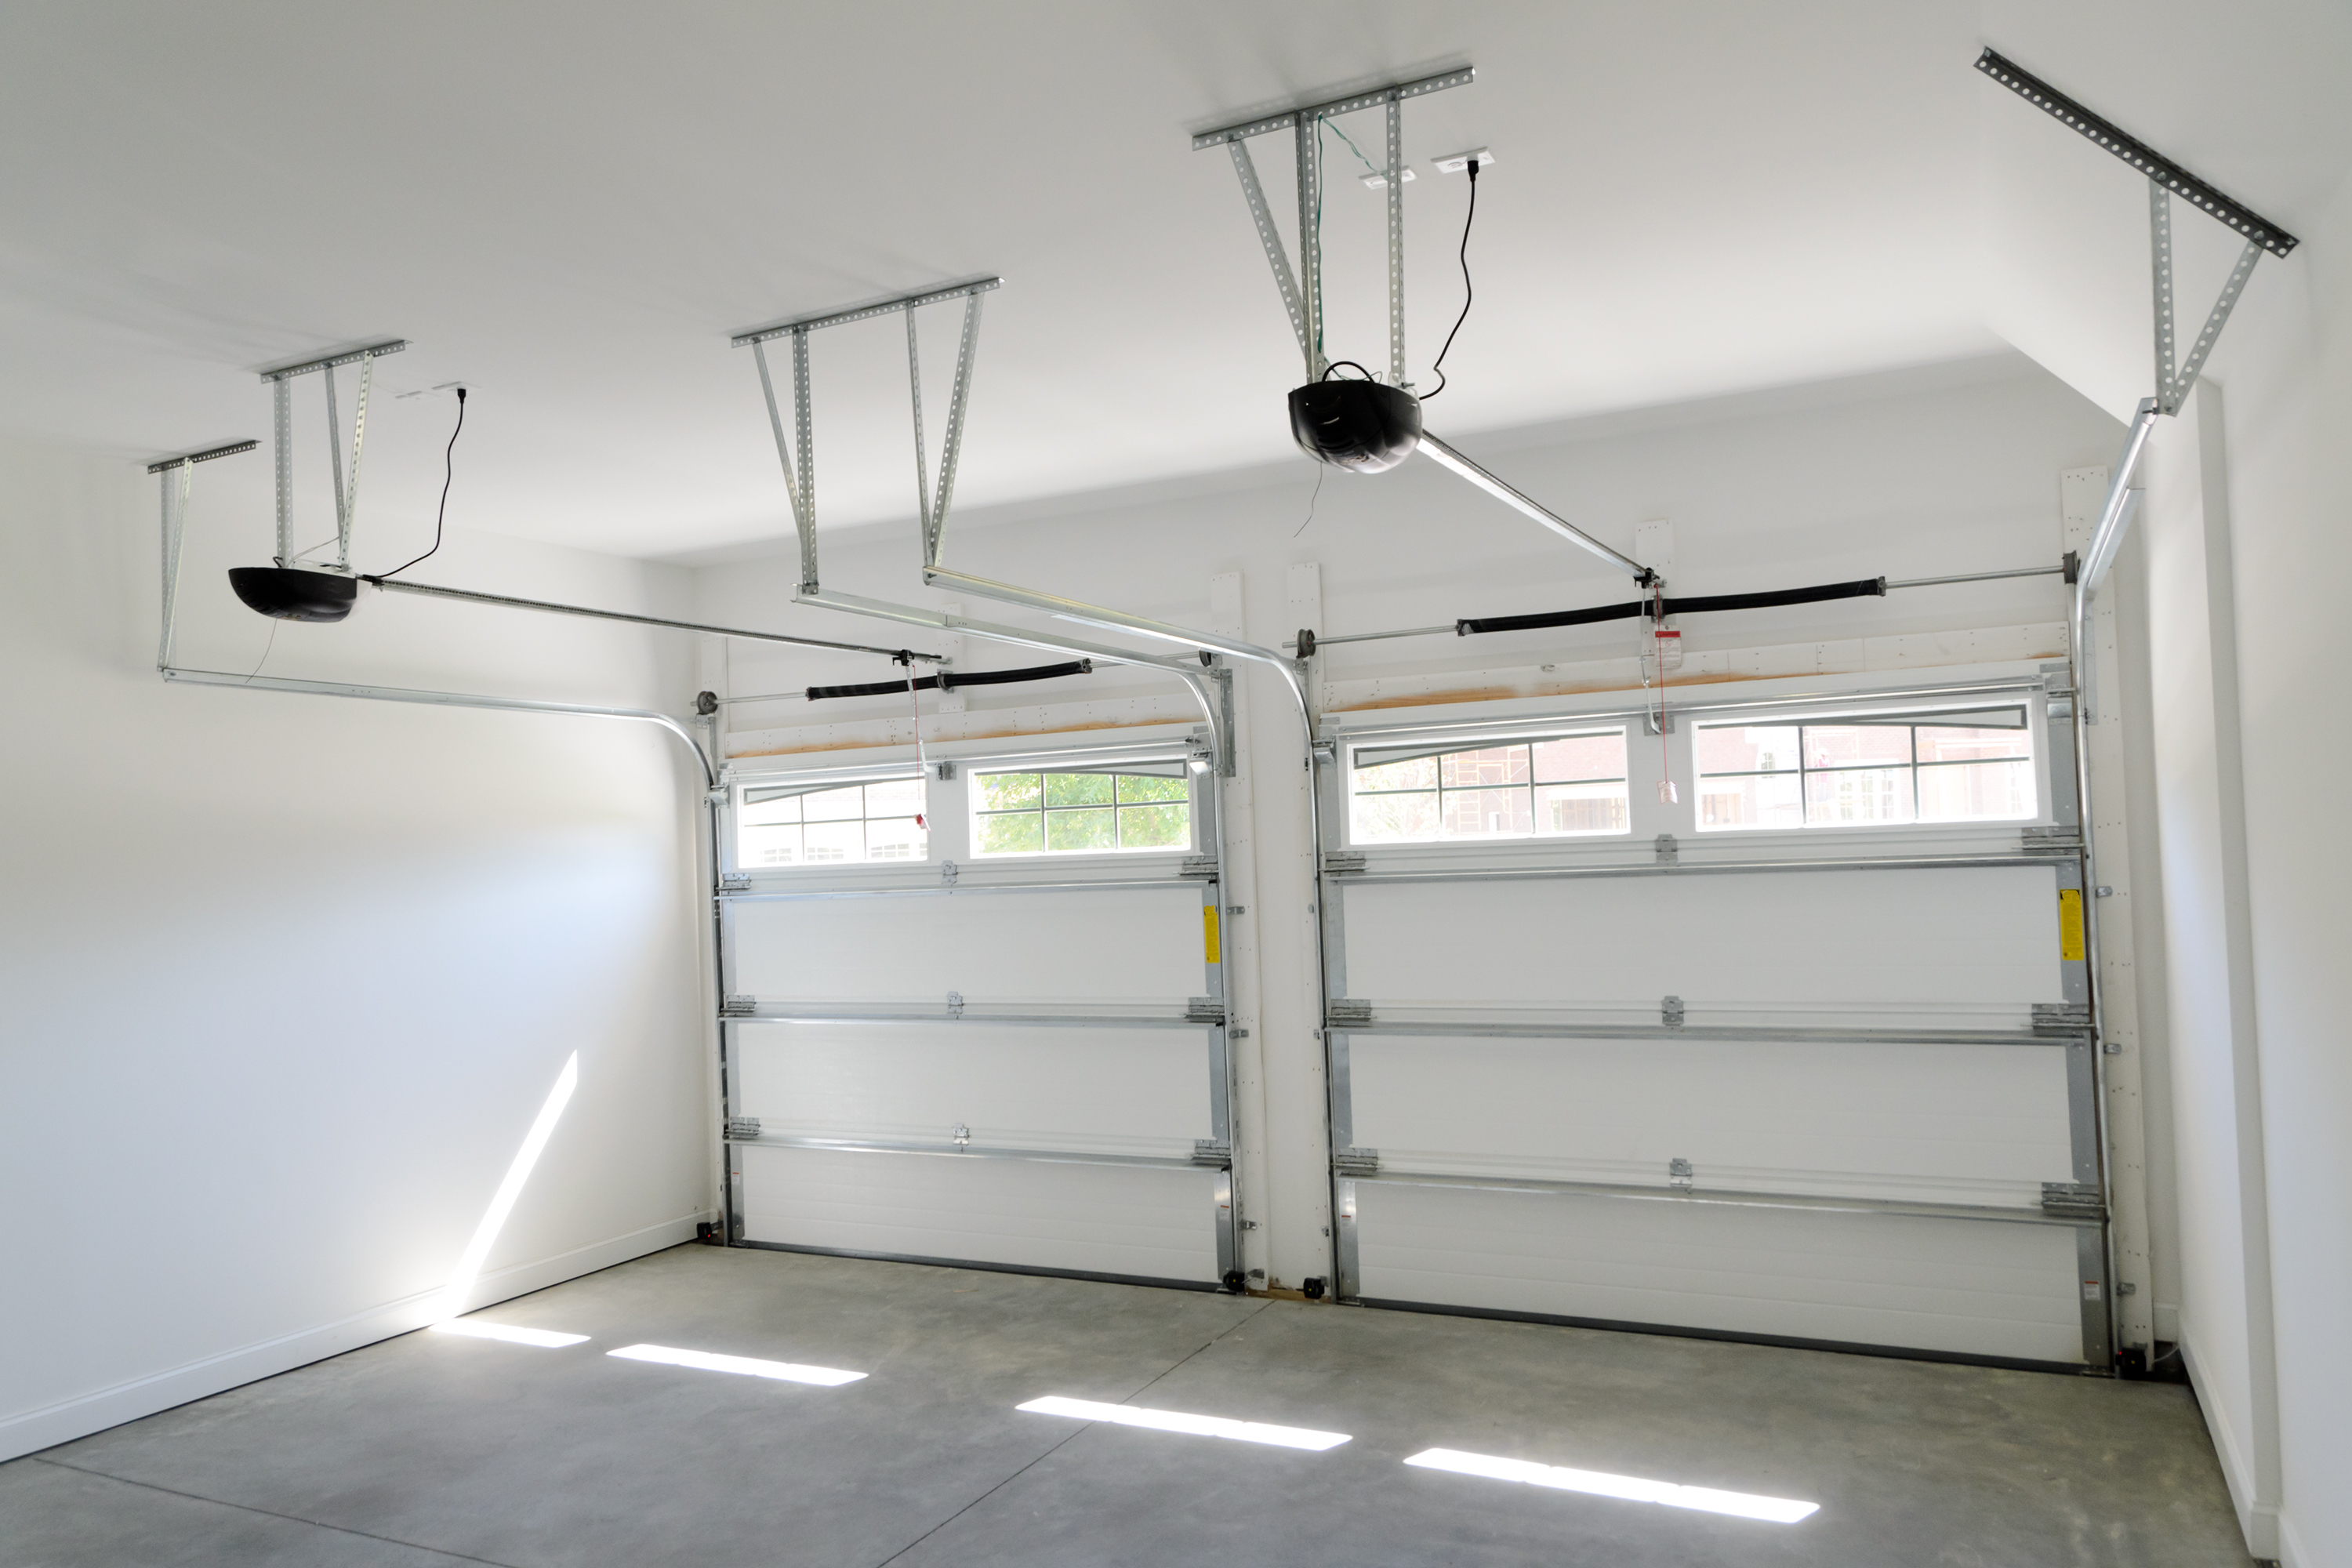 Charmant Overhead Door Company Has Been Providing Knoxvilleu0027s Residential Garage Door  Repair Service Since 1936. We Are The Pioneers Of The Garage Door And  Opener ...